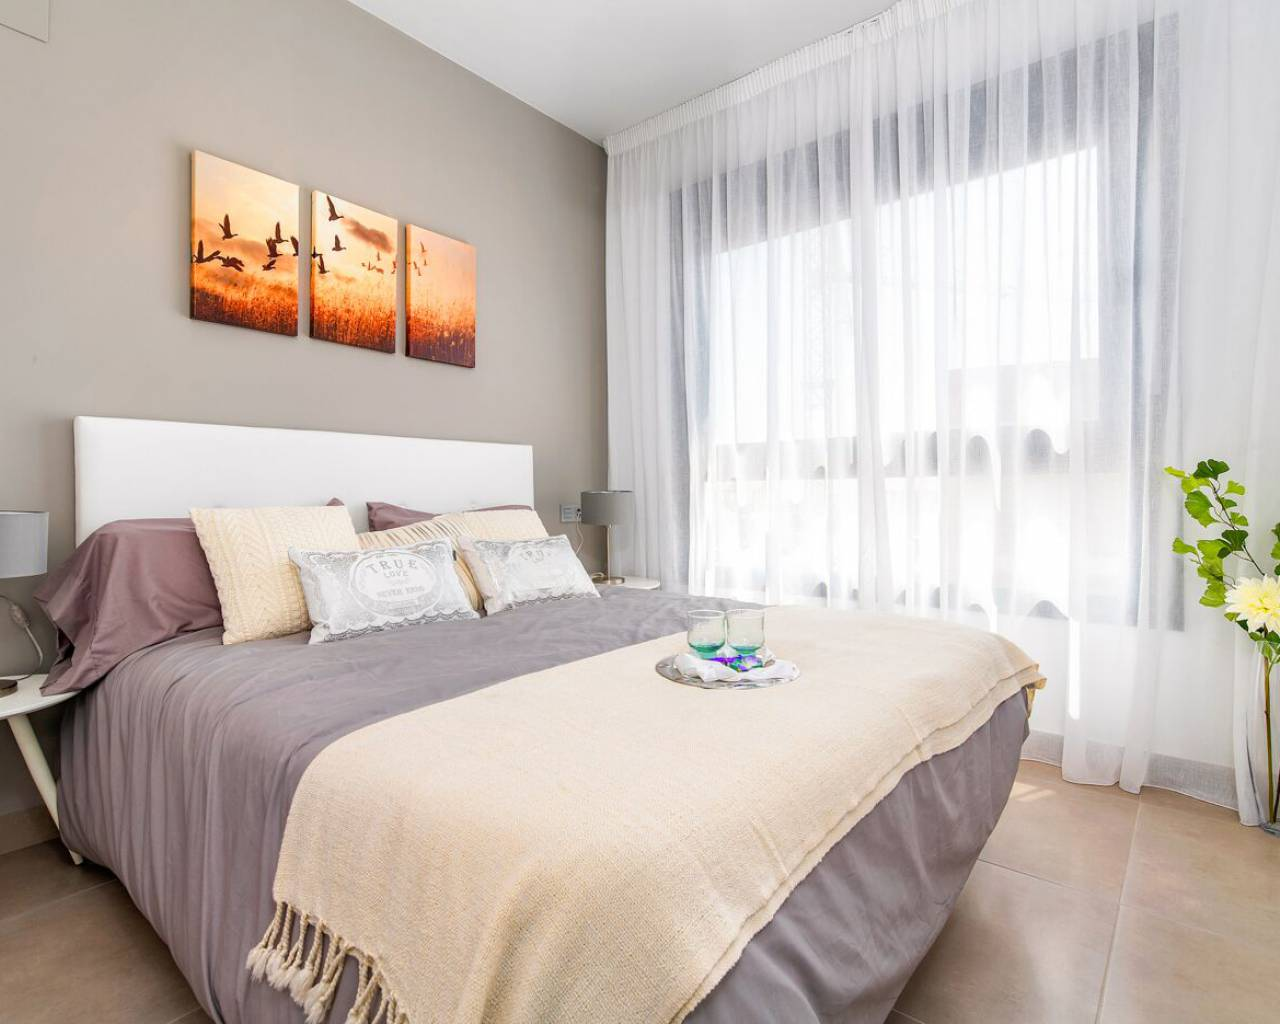 large bedroom in new apartments pilar de la horadada for sale with zebra homes real estate agents guardamar del segura